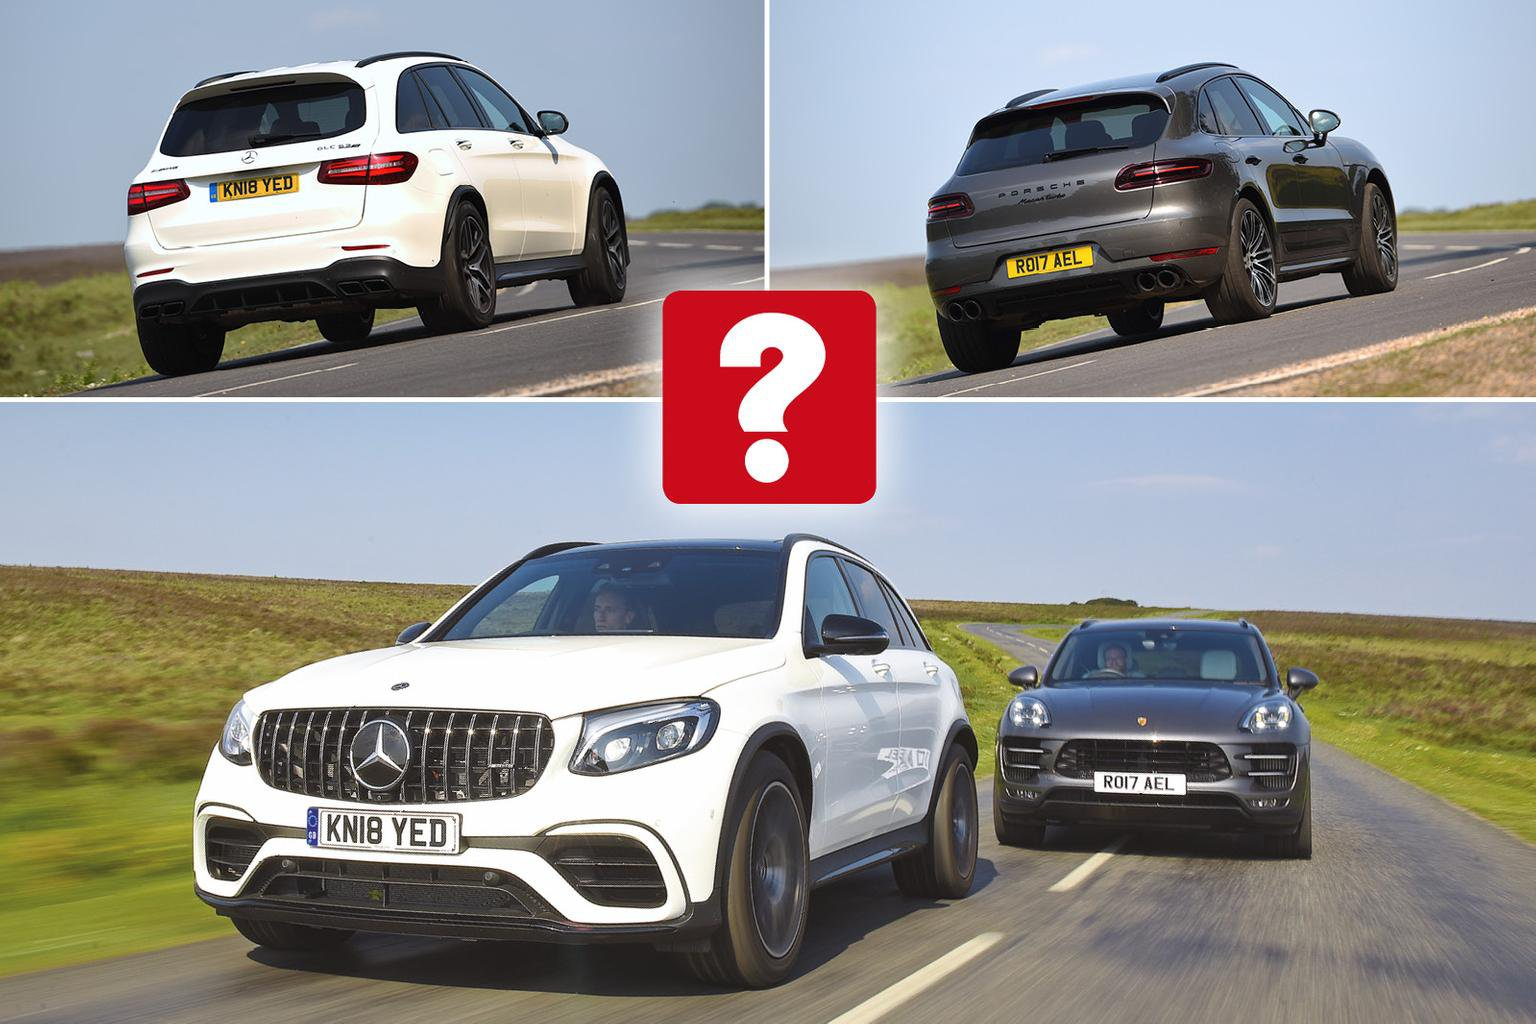 New Mercedes-AMG GLC 63 vs Porsche Macan